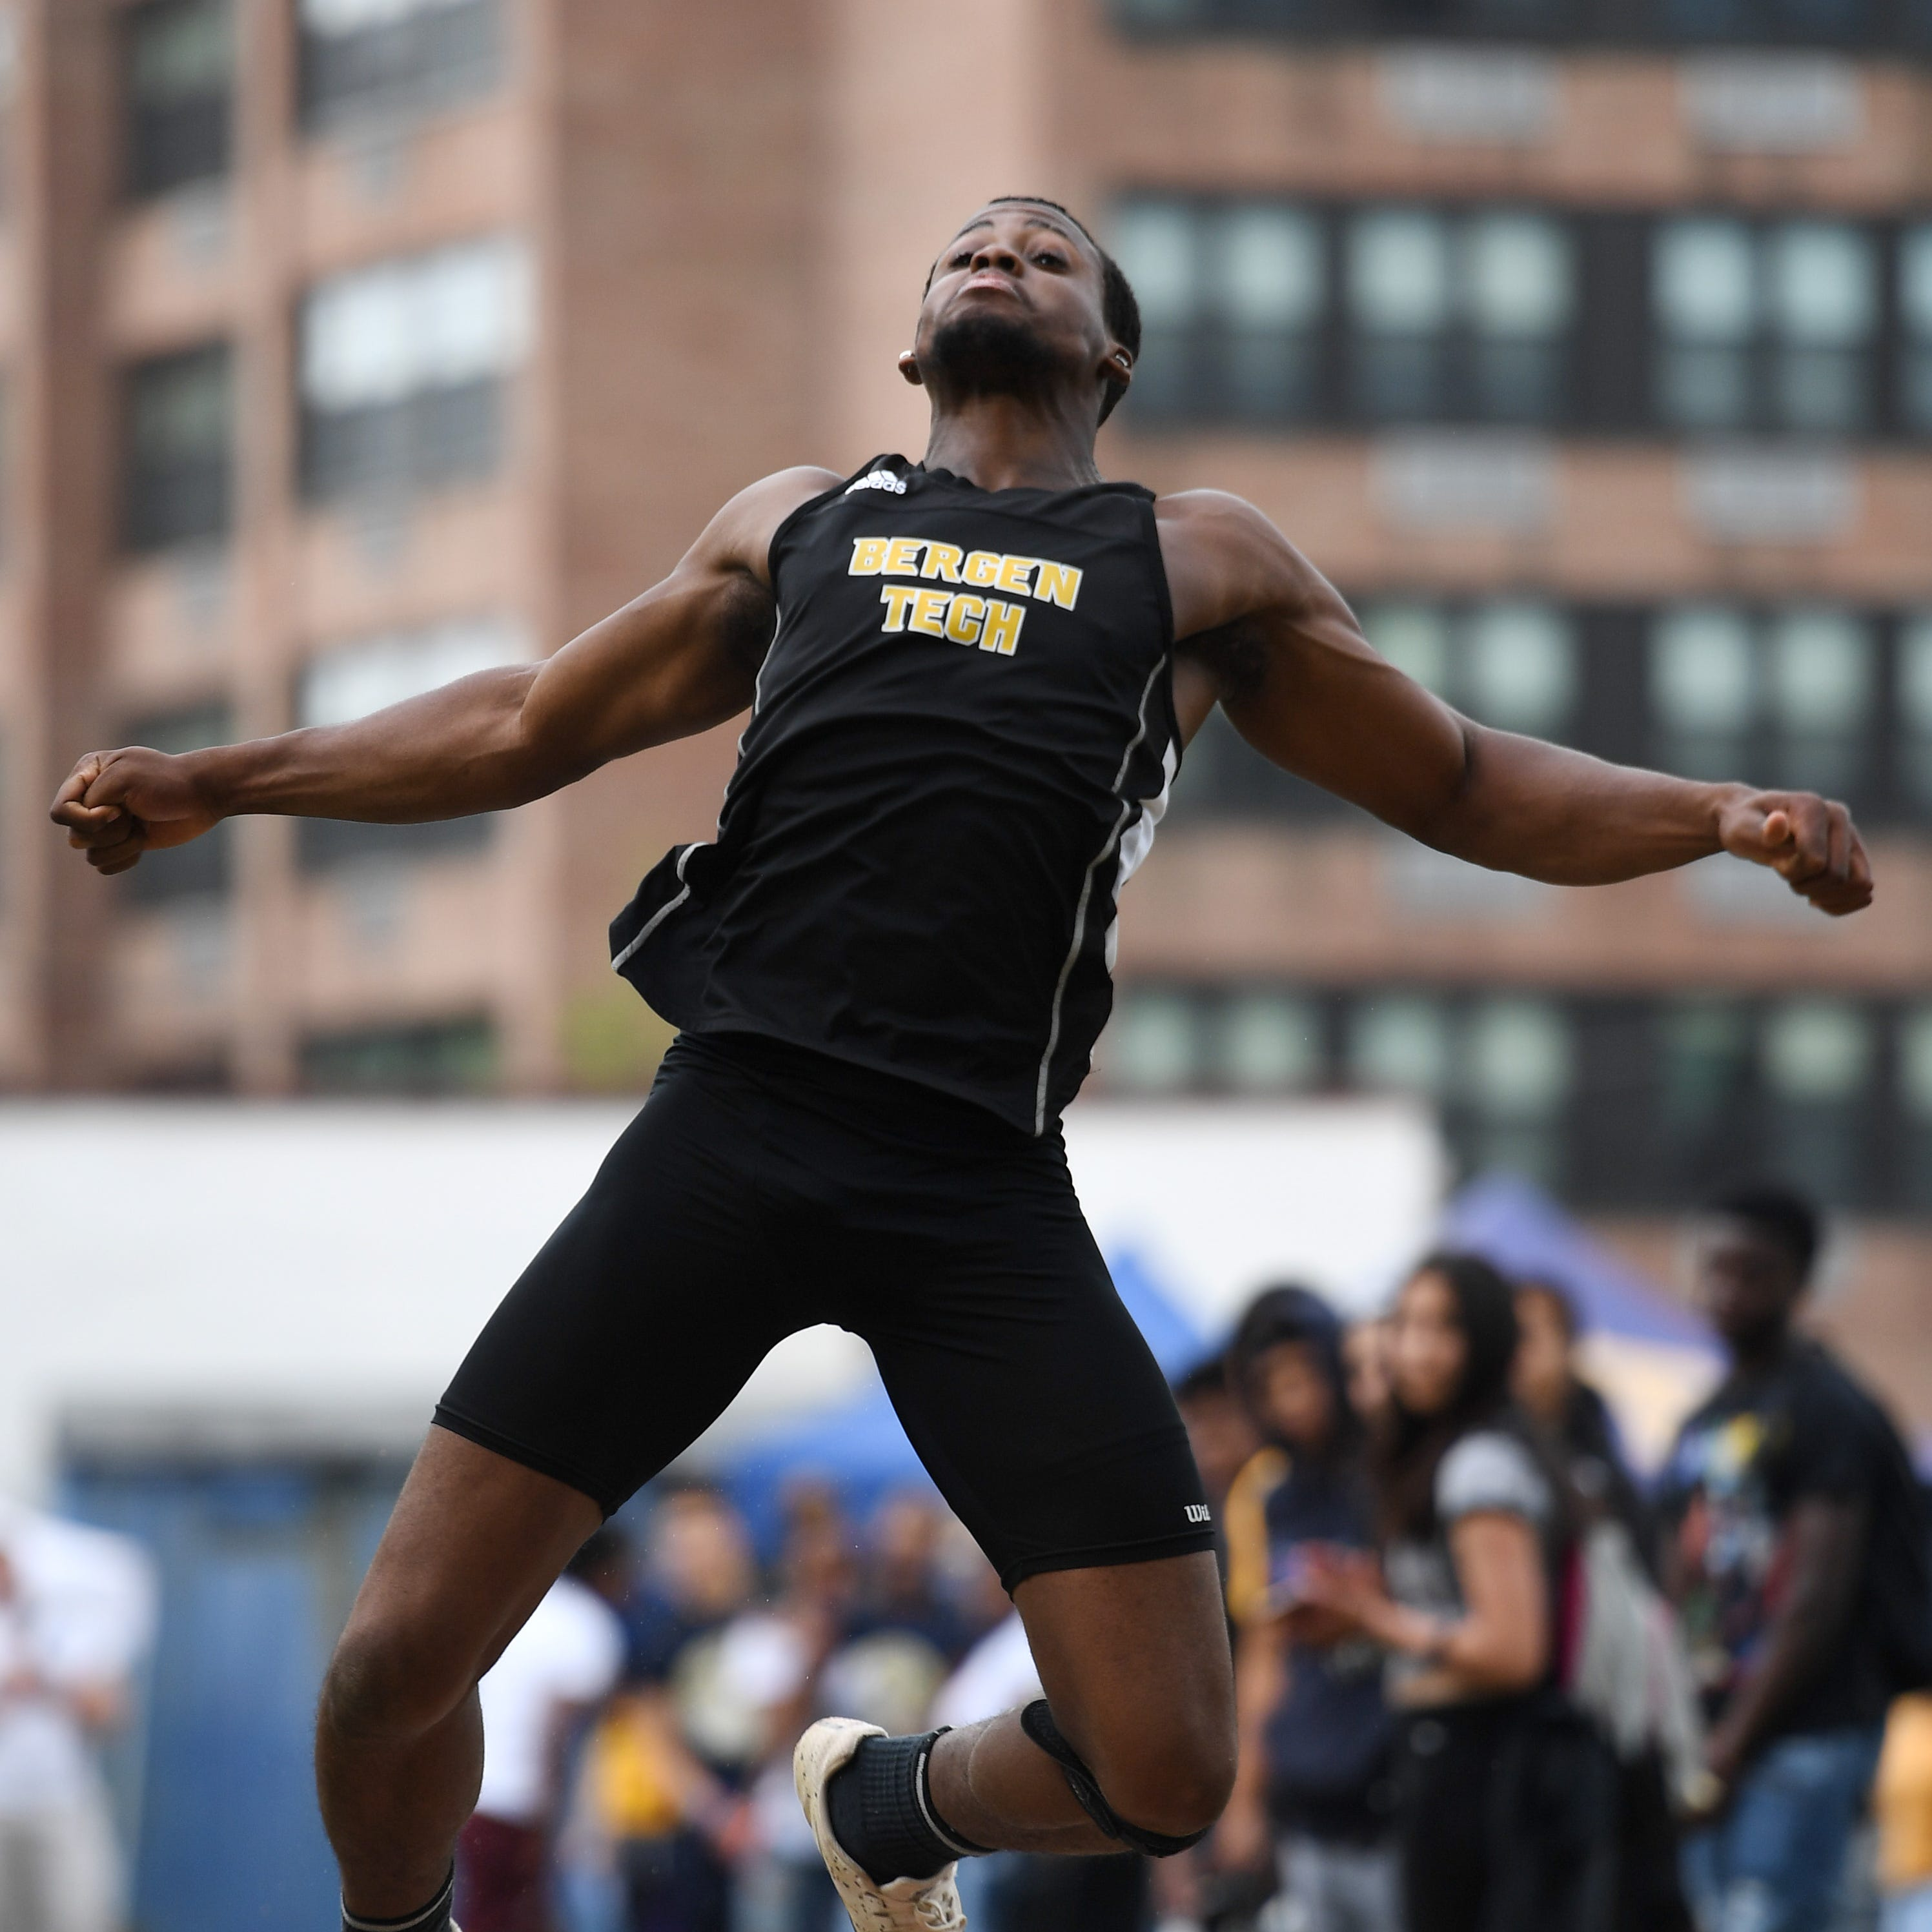 Bergen Meet of Champions at Hackensack High School on Friday, May 17, 2019. Keivon Banks, of Bergen Tech, in the triple jump.